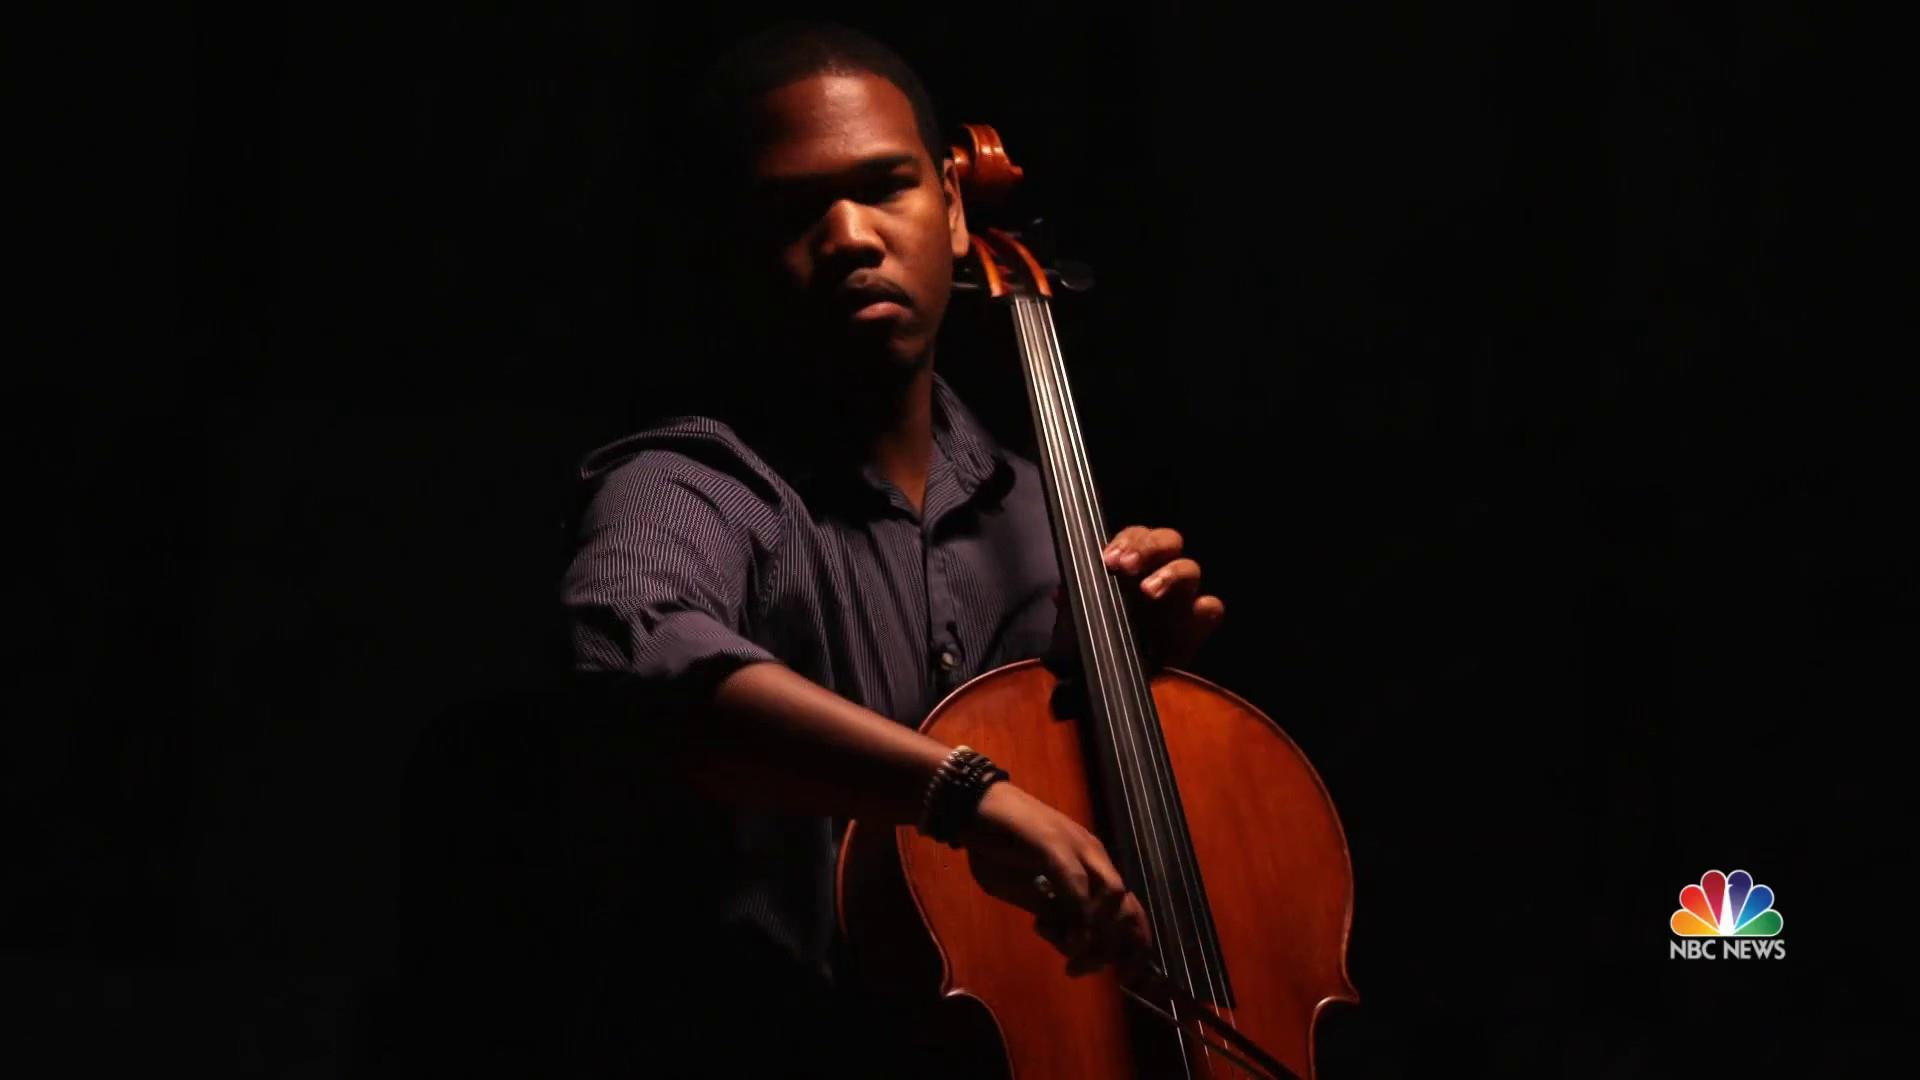 Angela Fuste minority musicians want in as classical music struggles to diversify